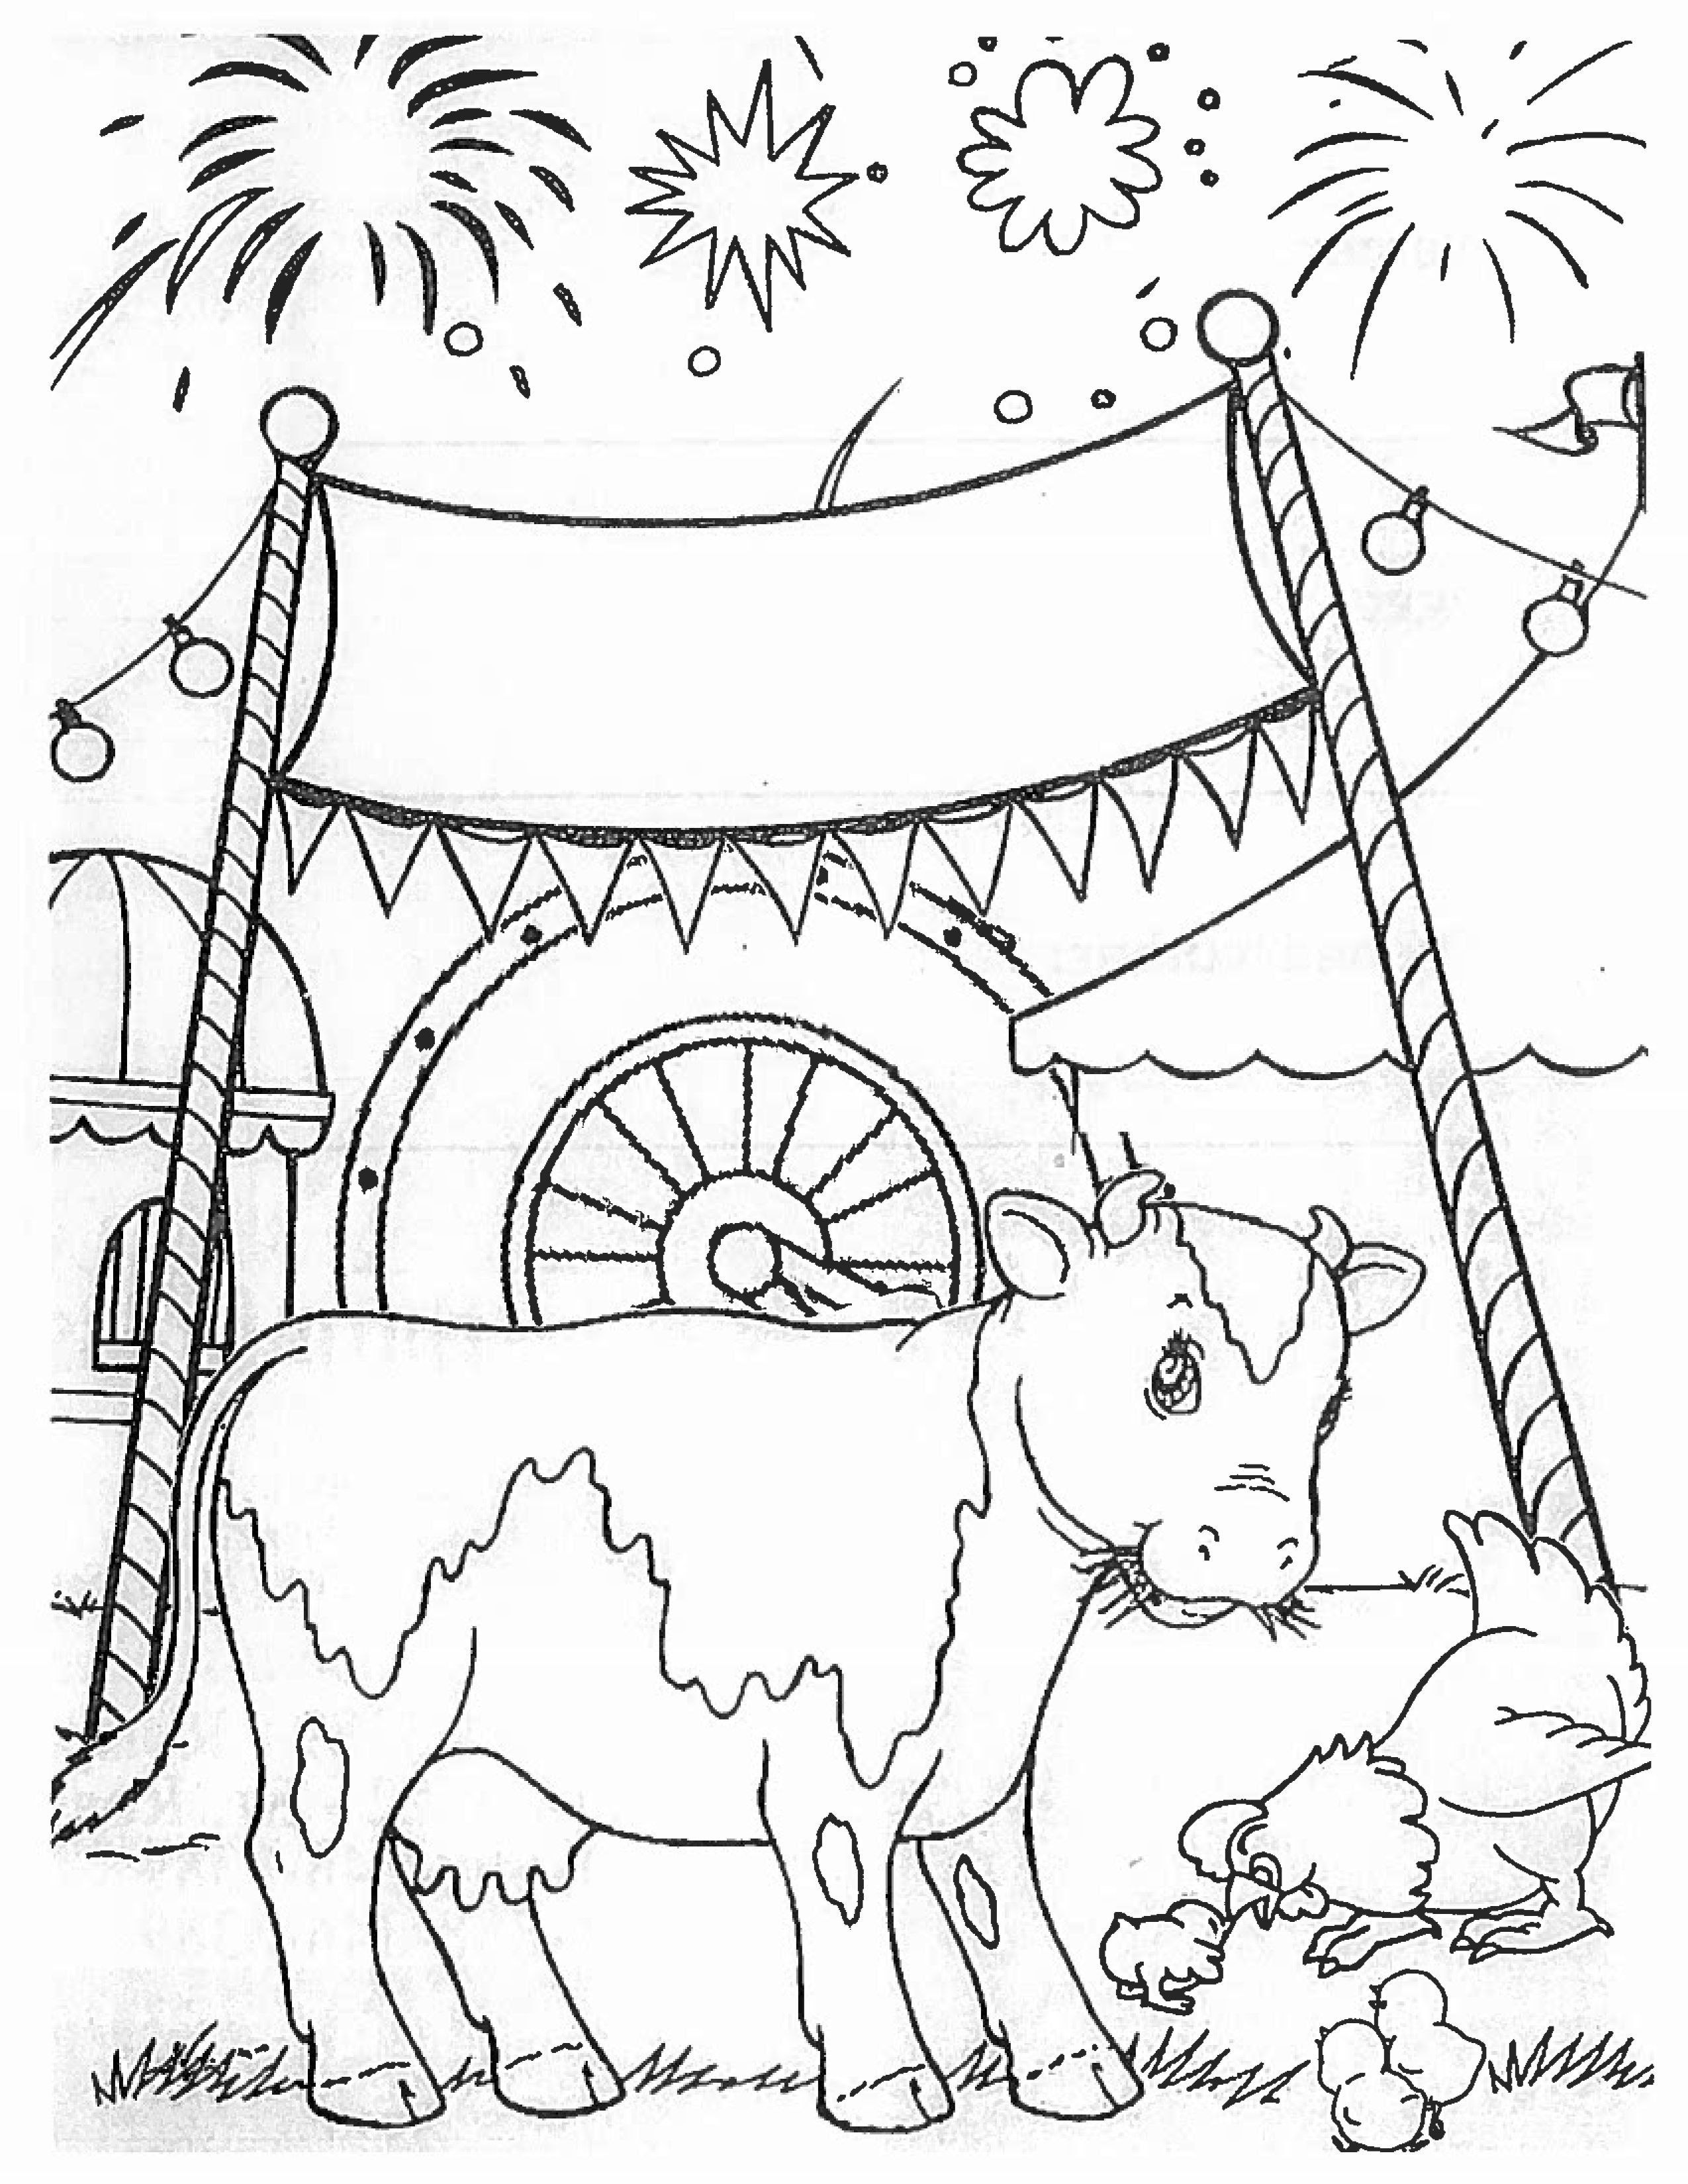 State Fair Coloring Pages Coloring Pages Detailed Coloring